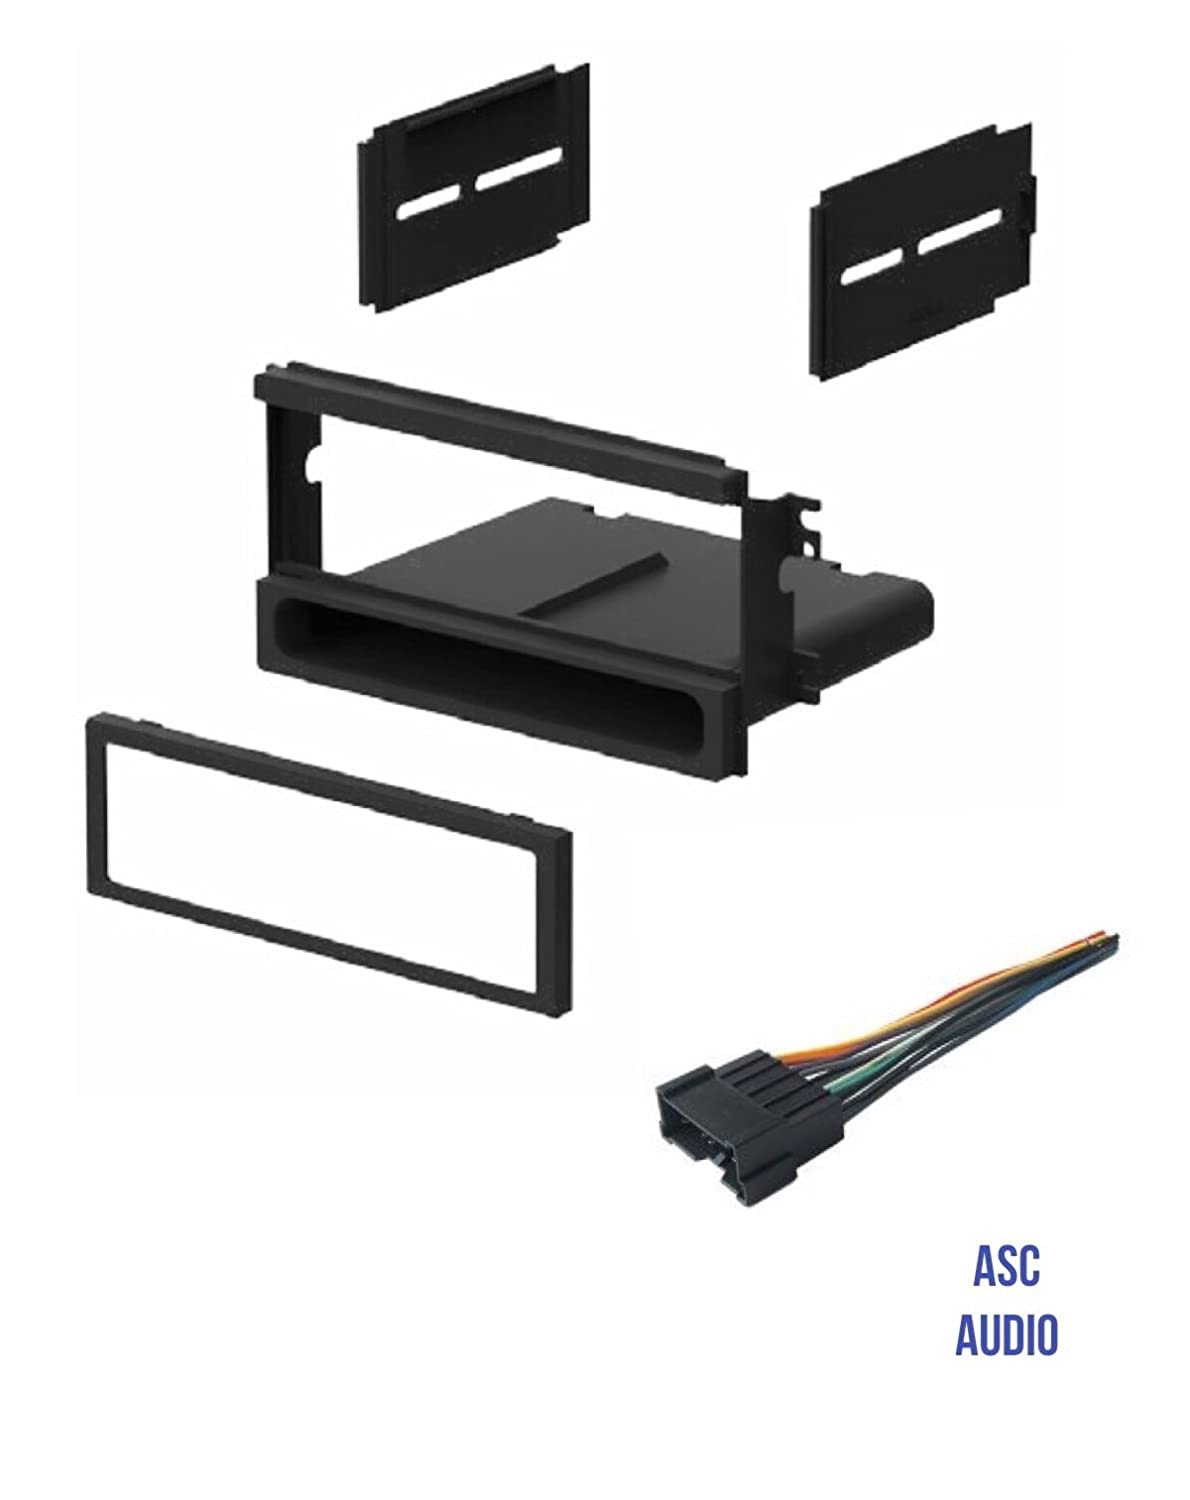 ASC Car Stereo Install Dash Kit and Wire Harness for installing an Aftermarket Single Din Radio for 2003 2004 2005 2006 Kia Sorento LX No Sport Package Other